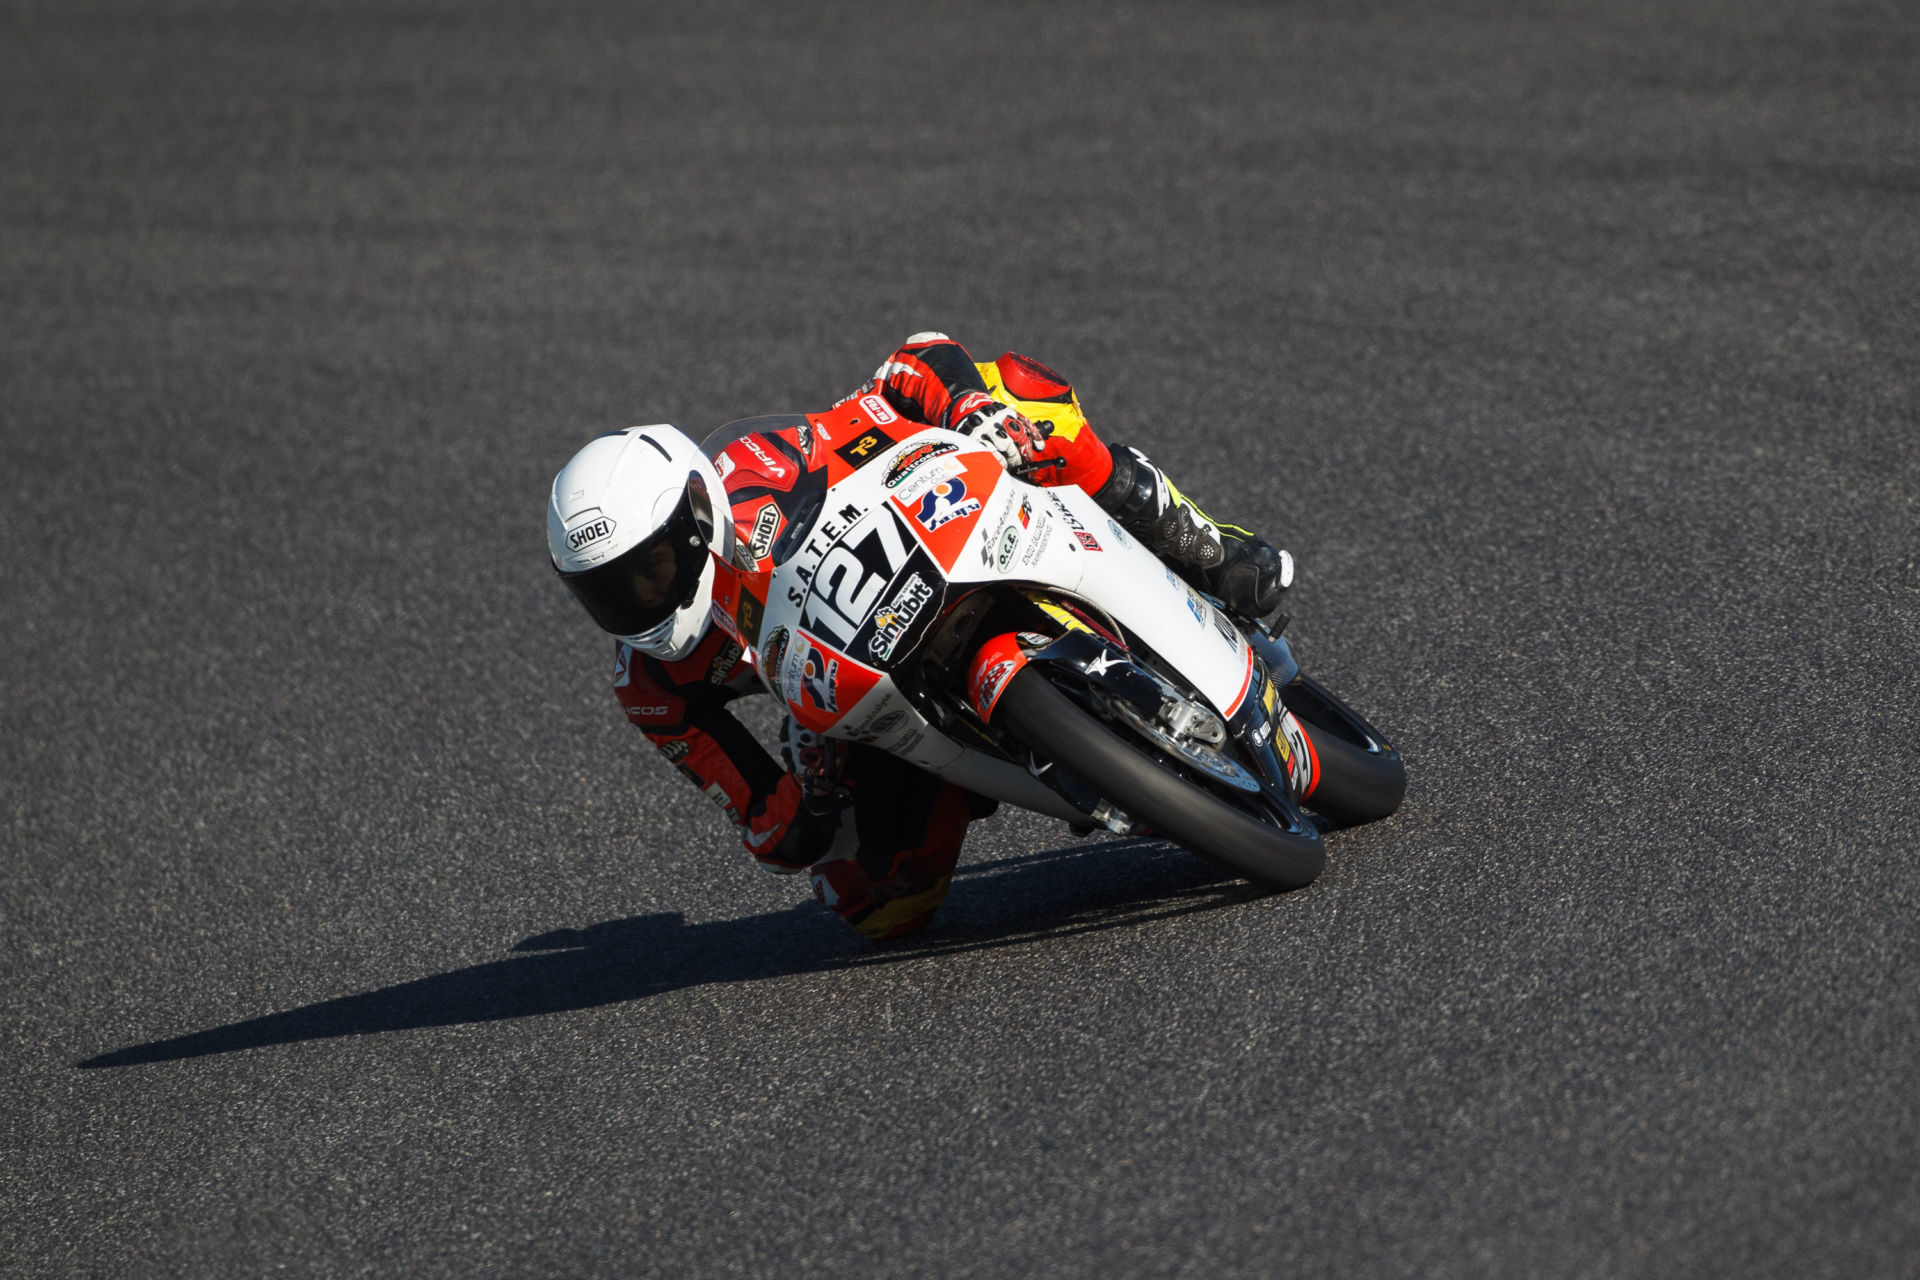 Max Toth (127), as seen during a CIV PreMoto3 event in Italy. Photo courtesy of Max Toth.